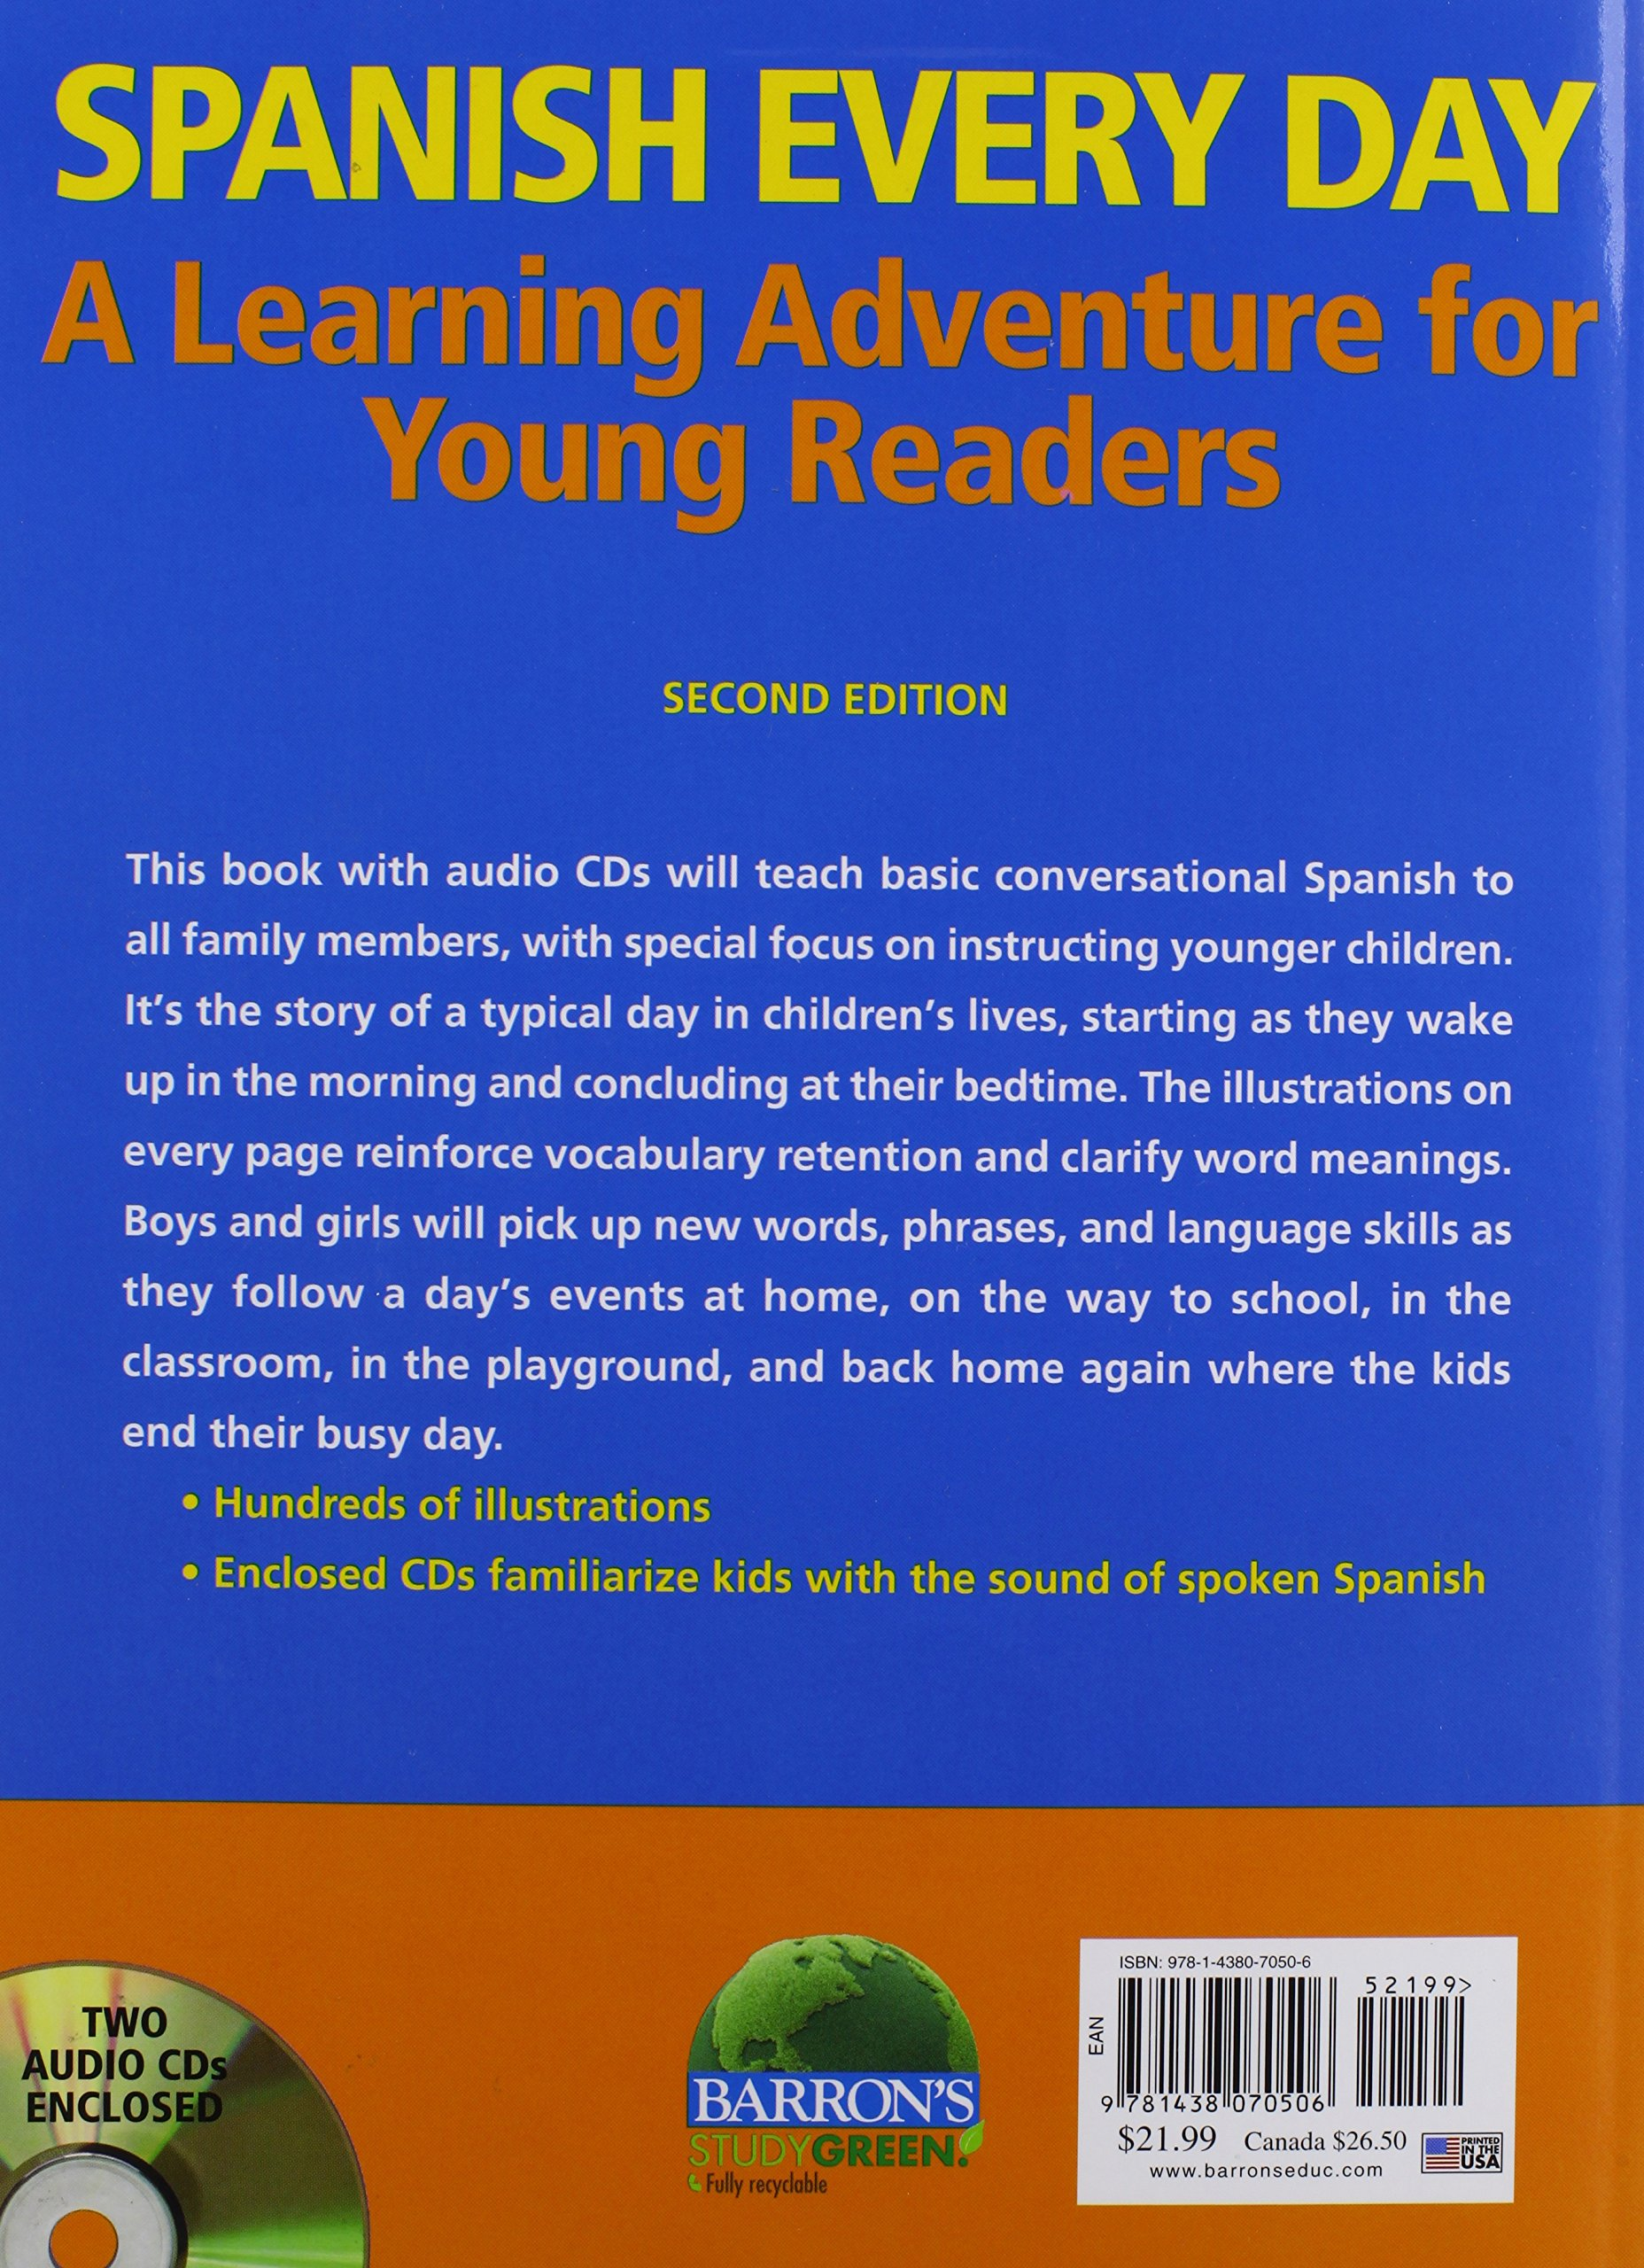 Spanish Every Day with Audio CDs: A Learning Adventure for Young Readers by Barron's Educational Series (Image #1)